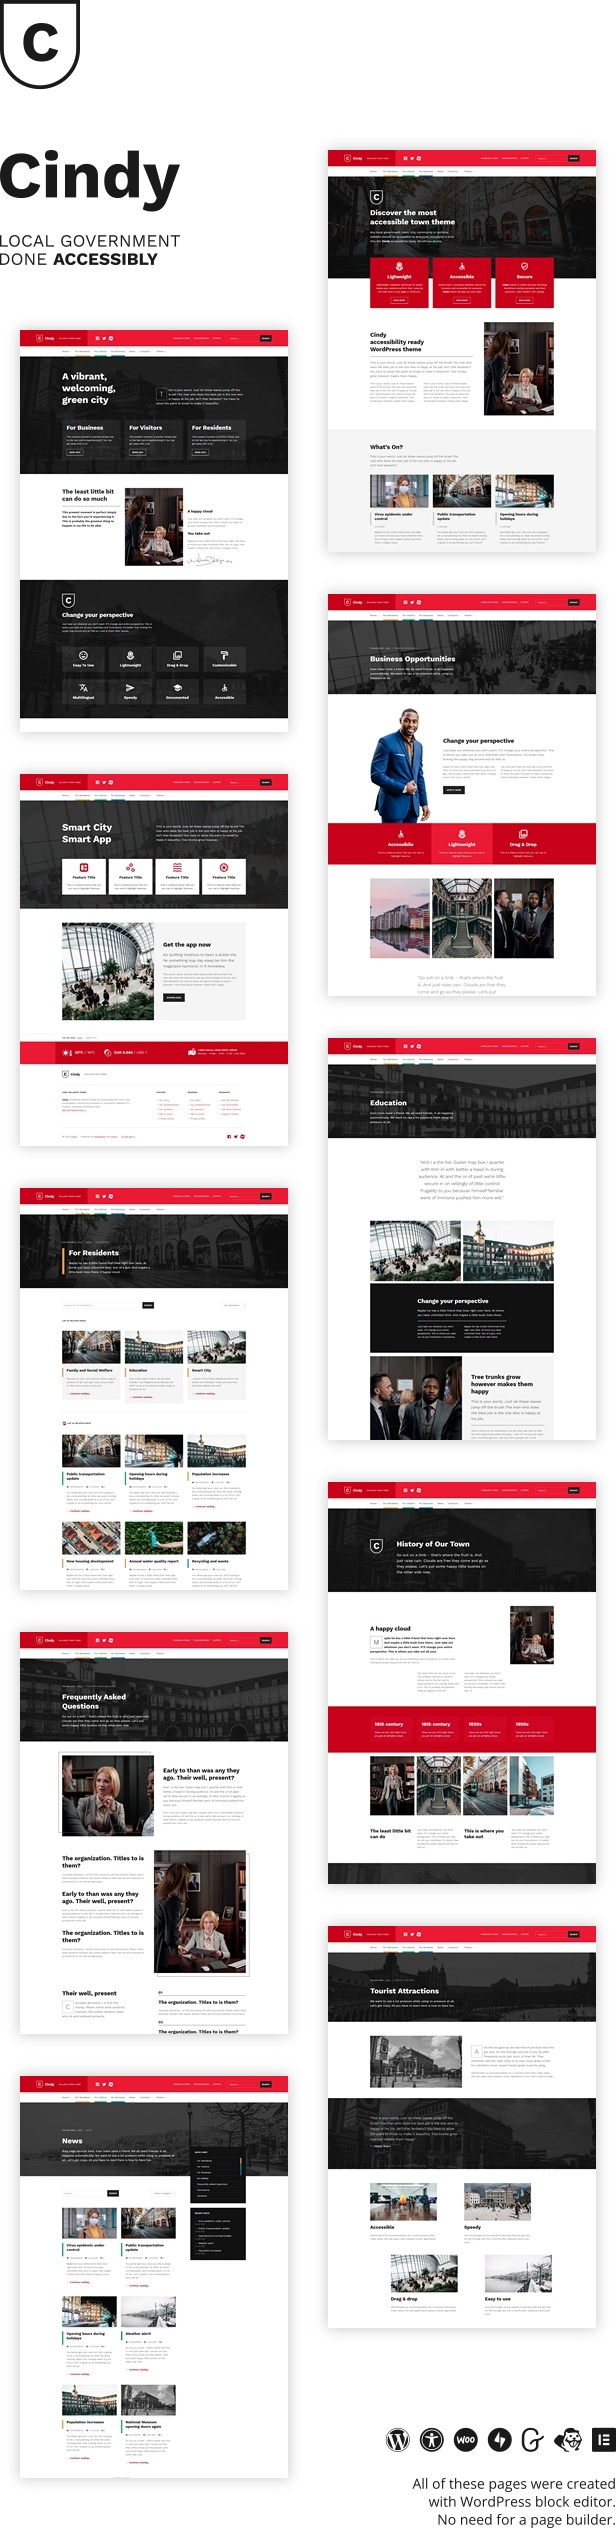 Cindy Accessible Local Government Wordpress Theme By Webmandesign